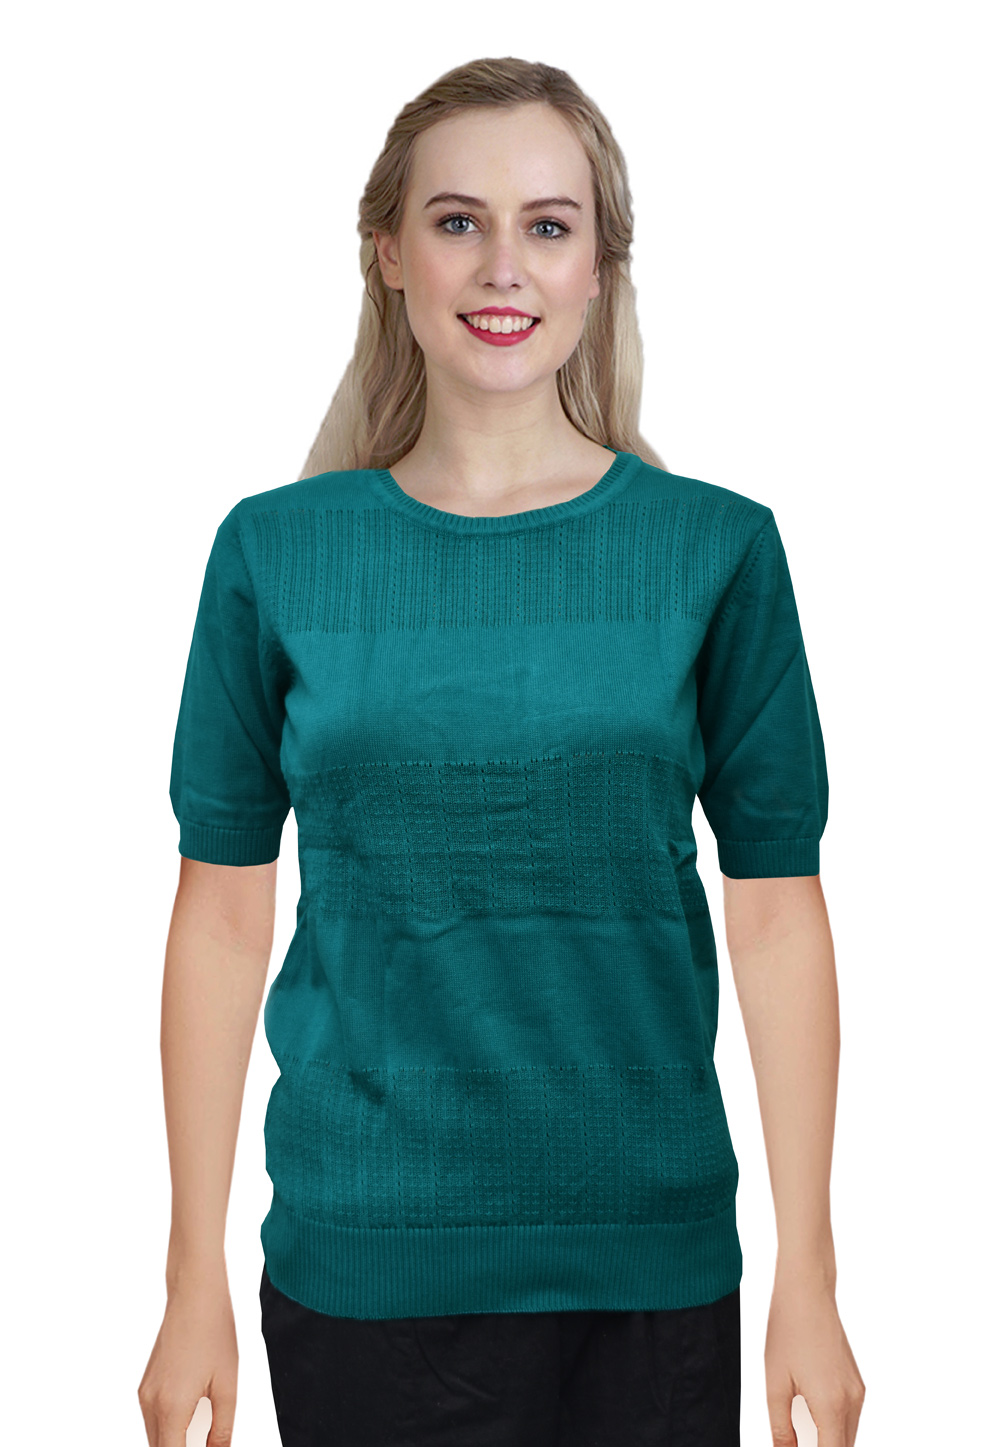 Teal Knitted Sweater Tops 214257